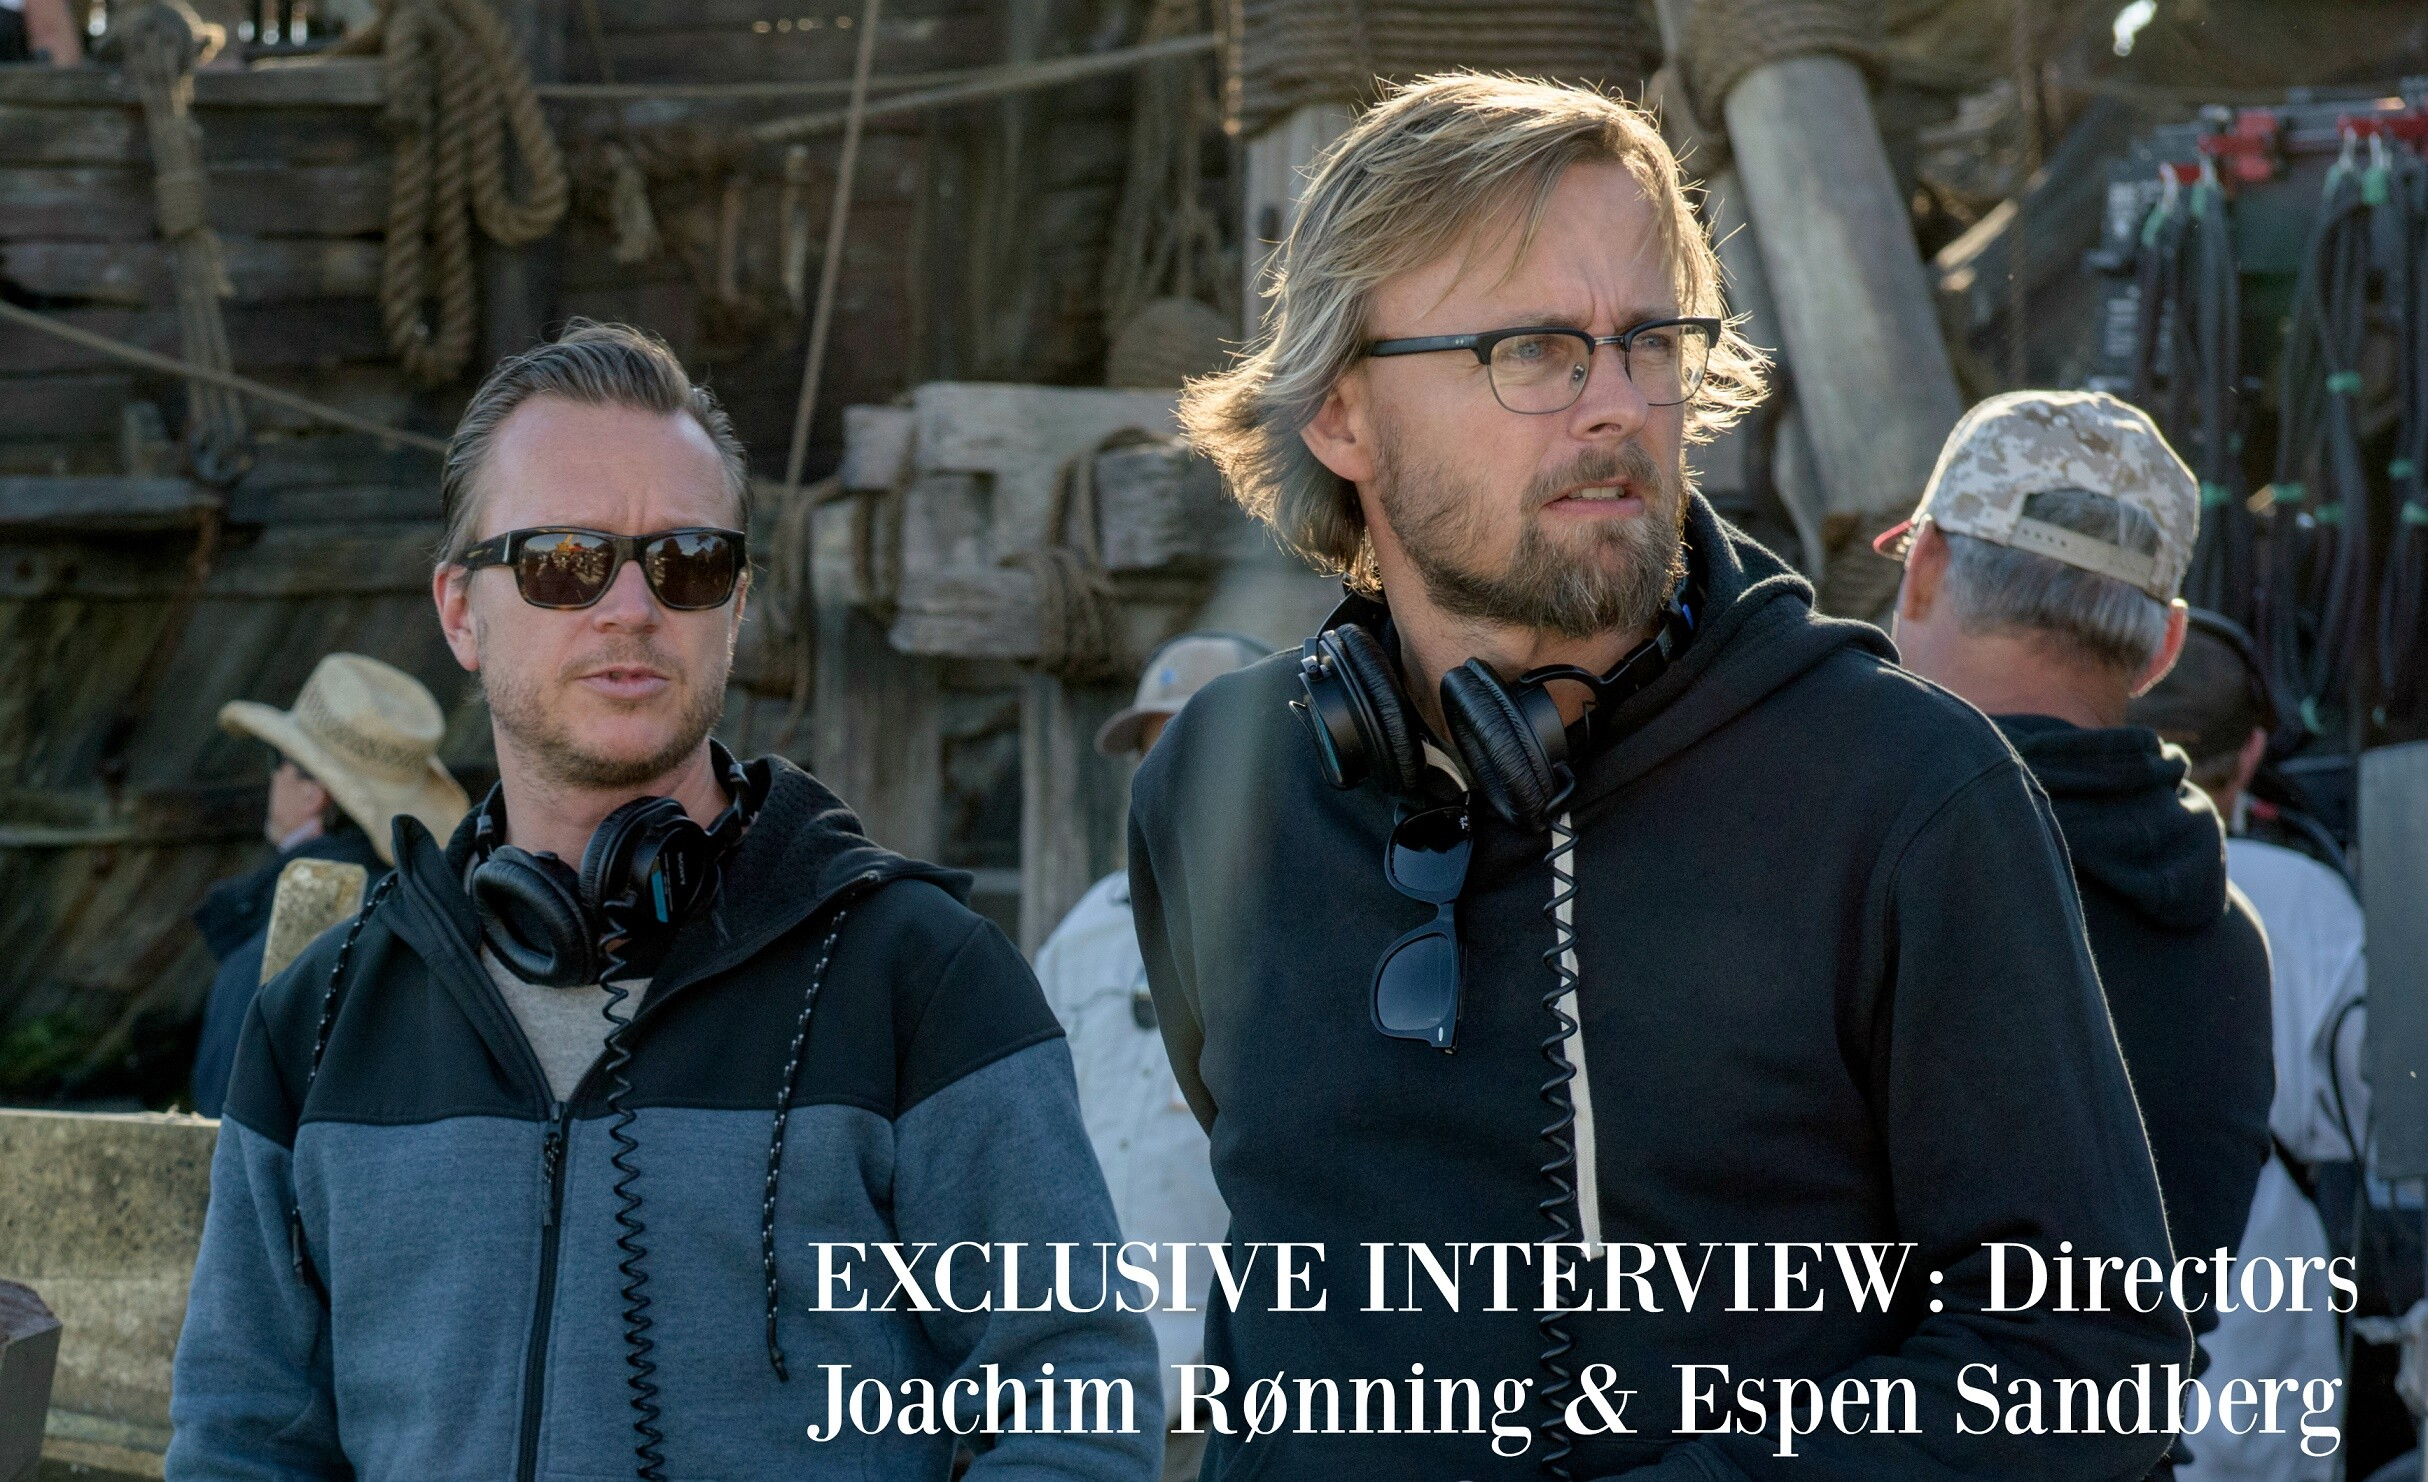 EXCLUSIVE INTERVIEW: Directors Joachim Rønning & Espen Sandberg ~ the Creative Minds behind PIRATES OF THE CARIBBEAN: DEAD MEN TELL NO TALES